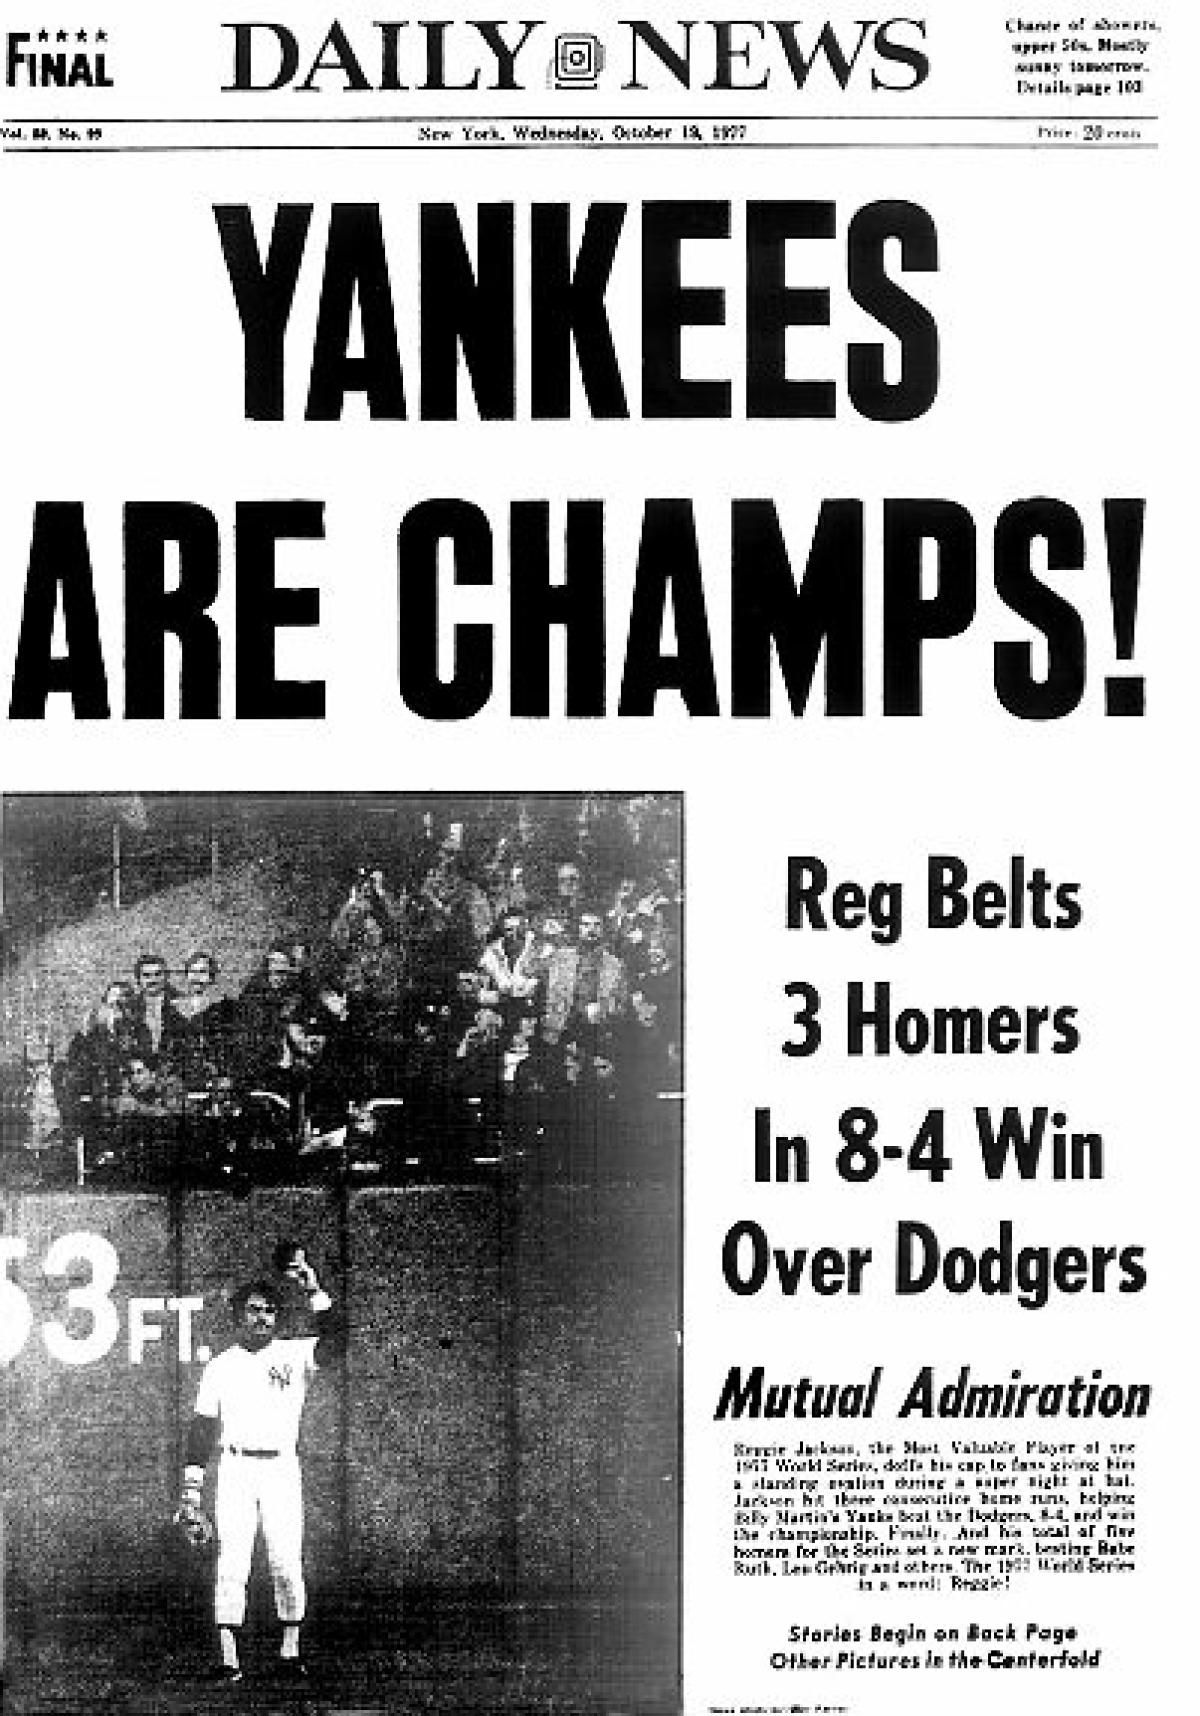 27 Yankees World Series titles, 27 Daily News covers